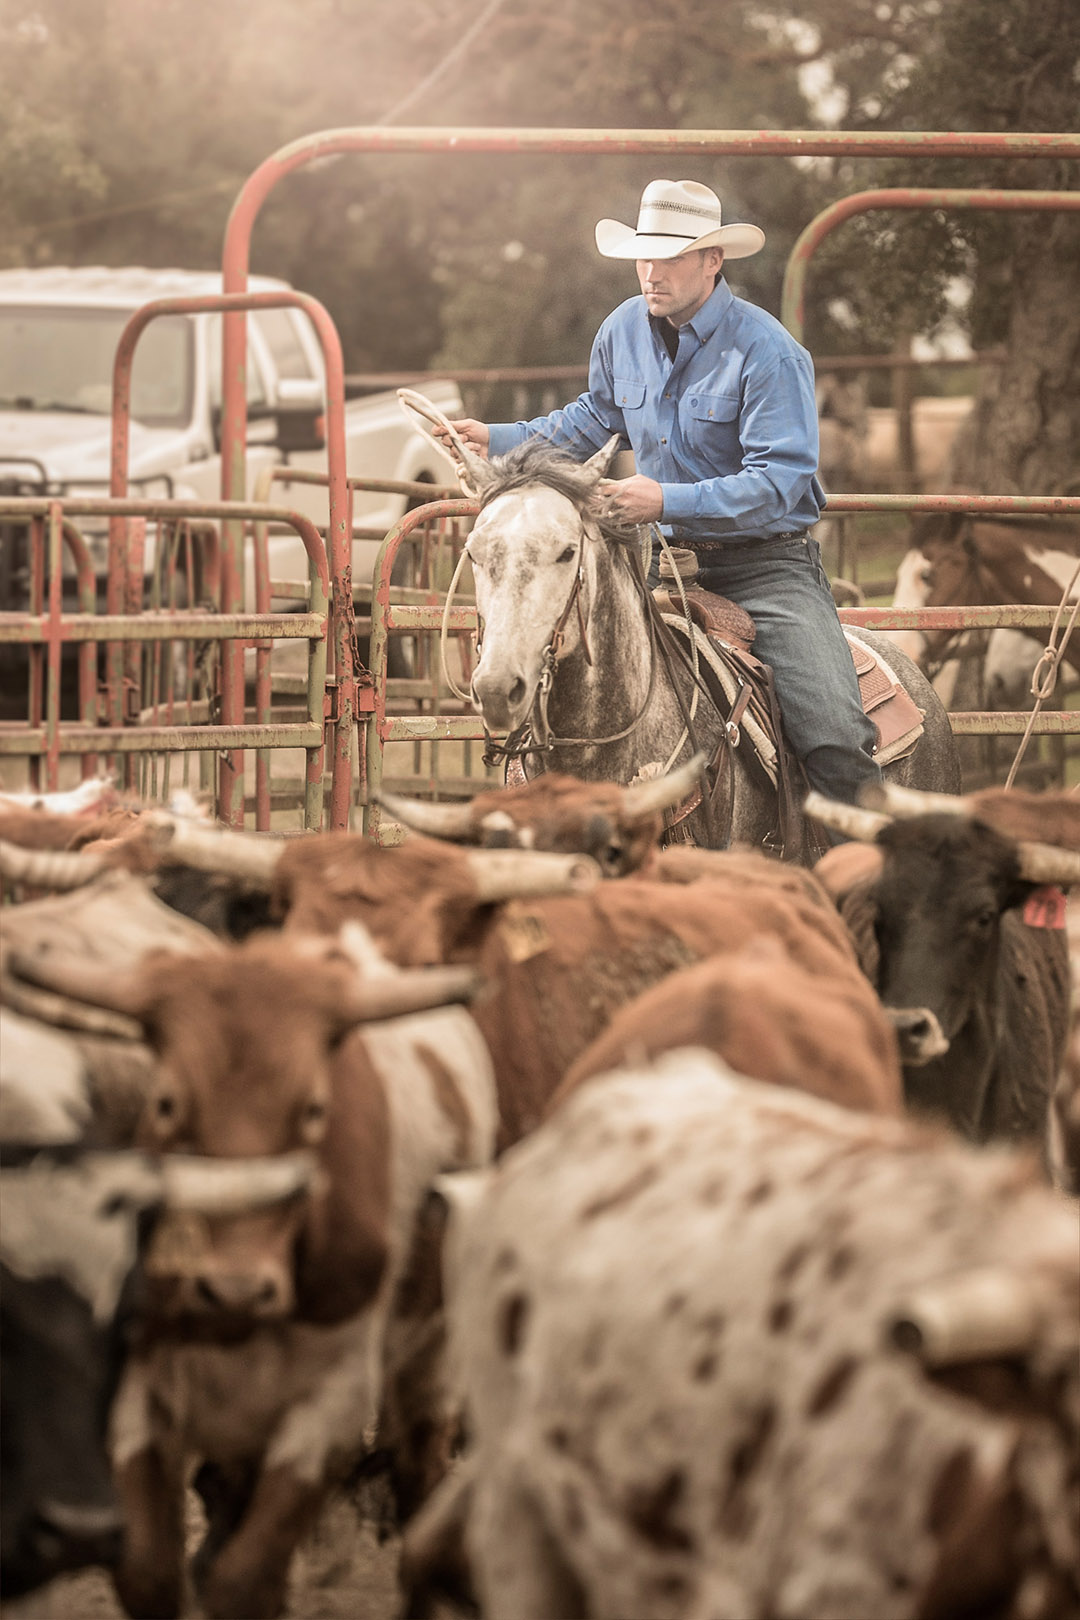 A Wrangler Jeans Athlete Ropes Cattle